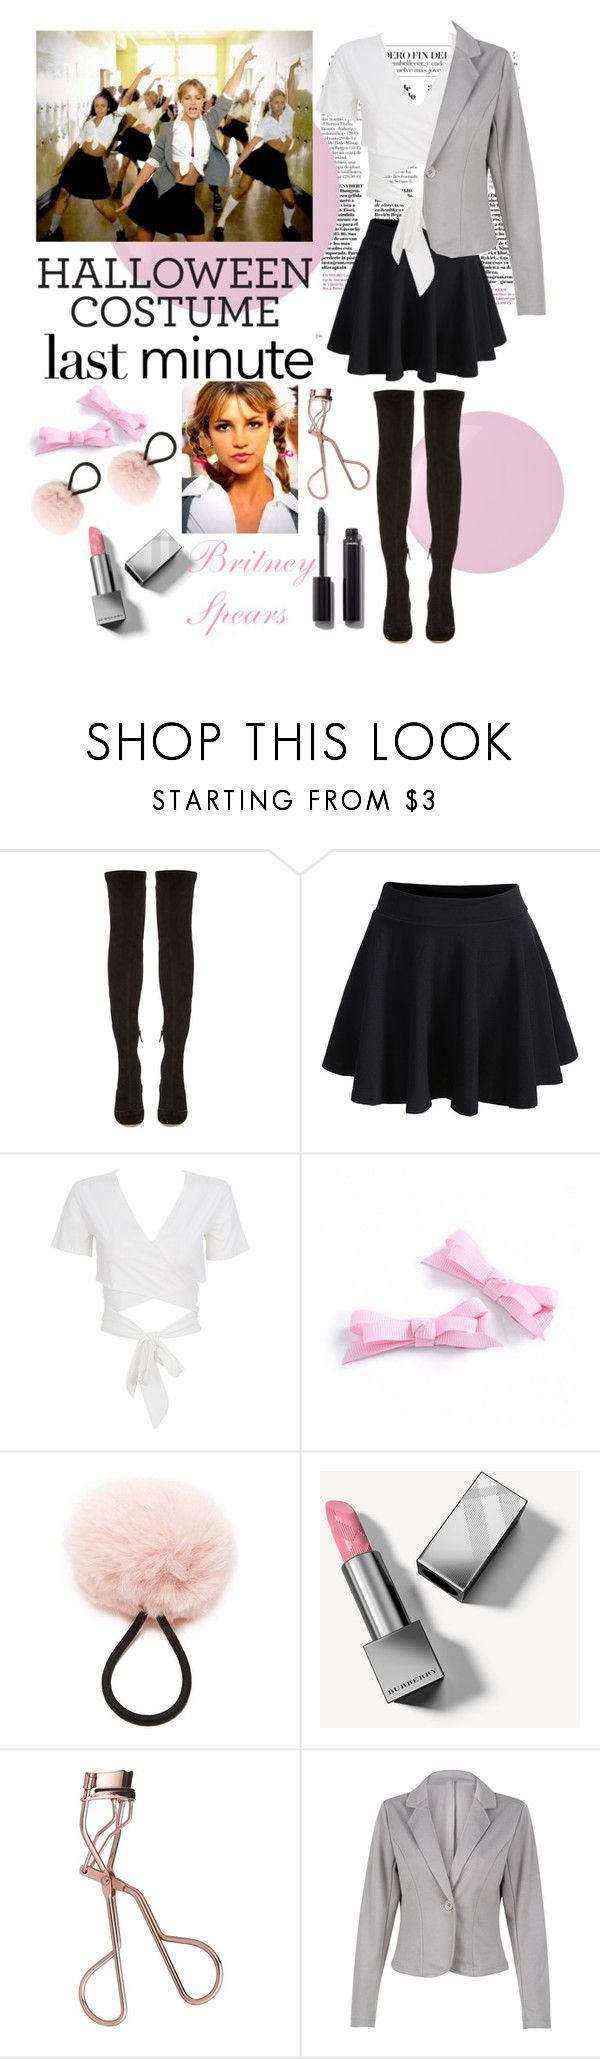 """""""Last Minuite Costume"""" by xonfident ❤ liked on Polyvore featuring Butter London, Nicholas Kirkwood, WithChic, Britney Spears, Forever 21, Burberry, Charlotte Tilbury and Chanel"""